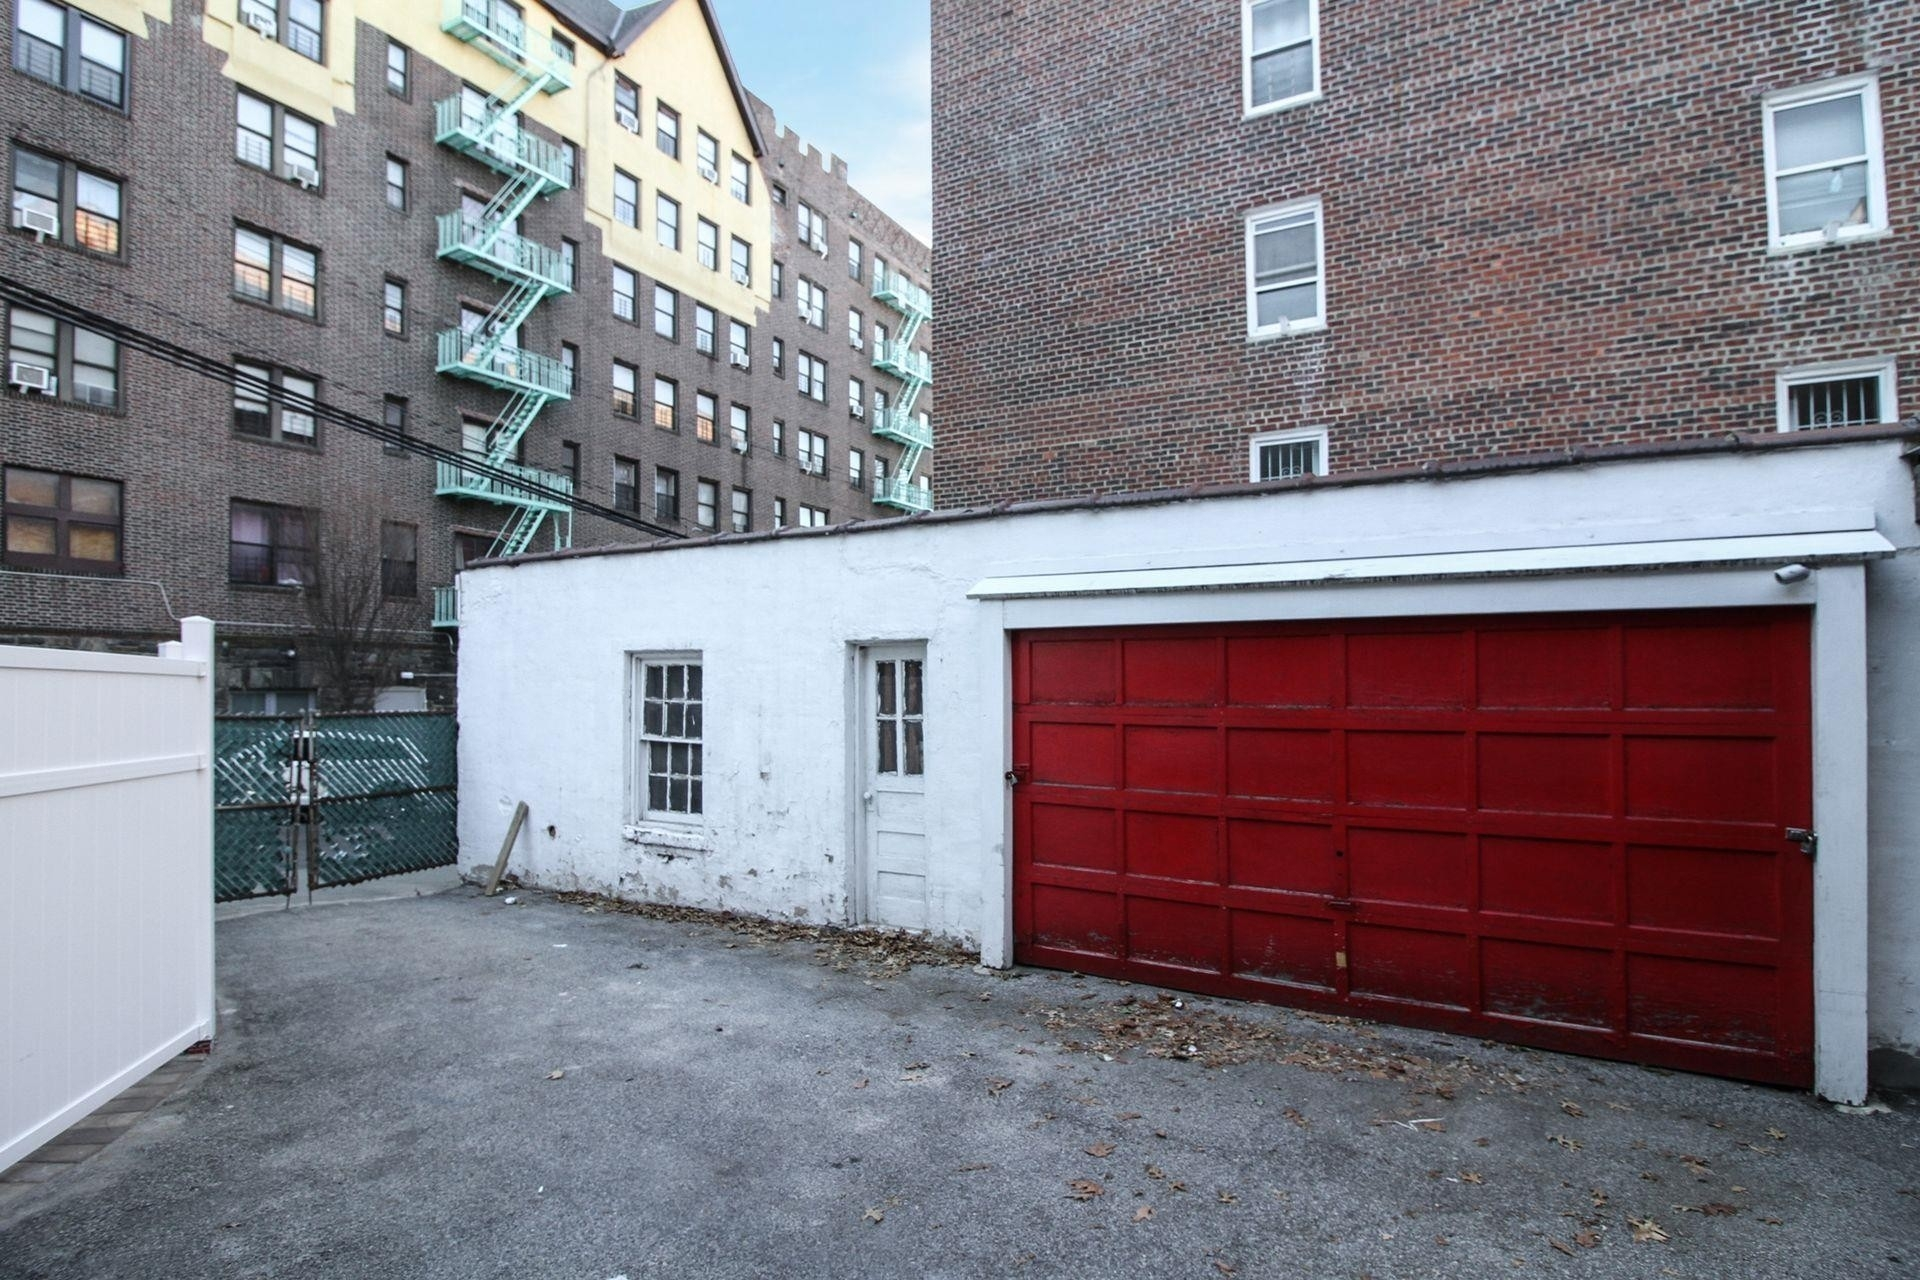 17. 建於3805 Sedgwick Avenue, Kingsbridge, Bronx, NY